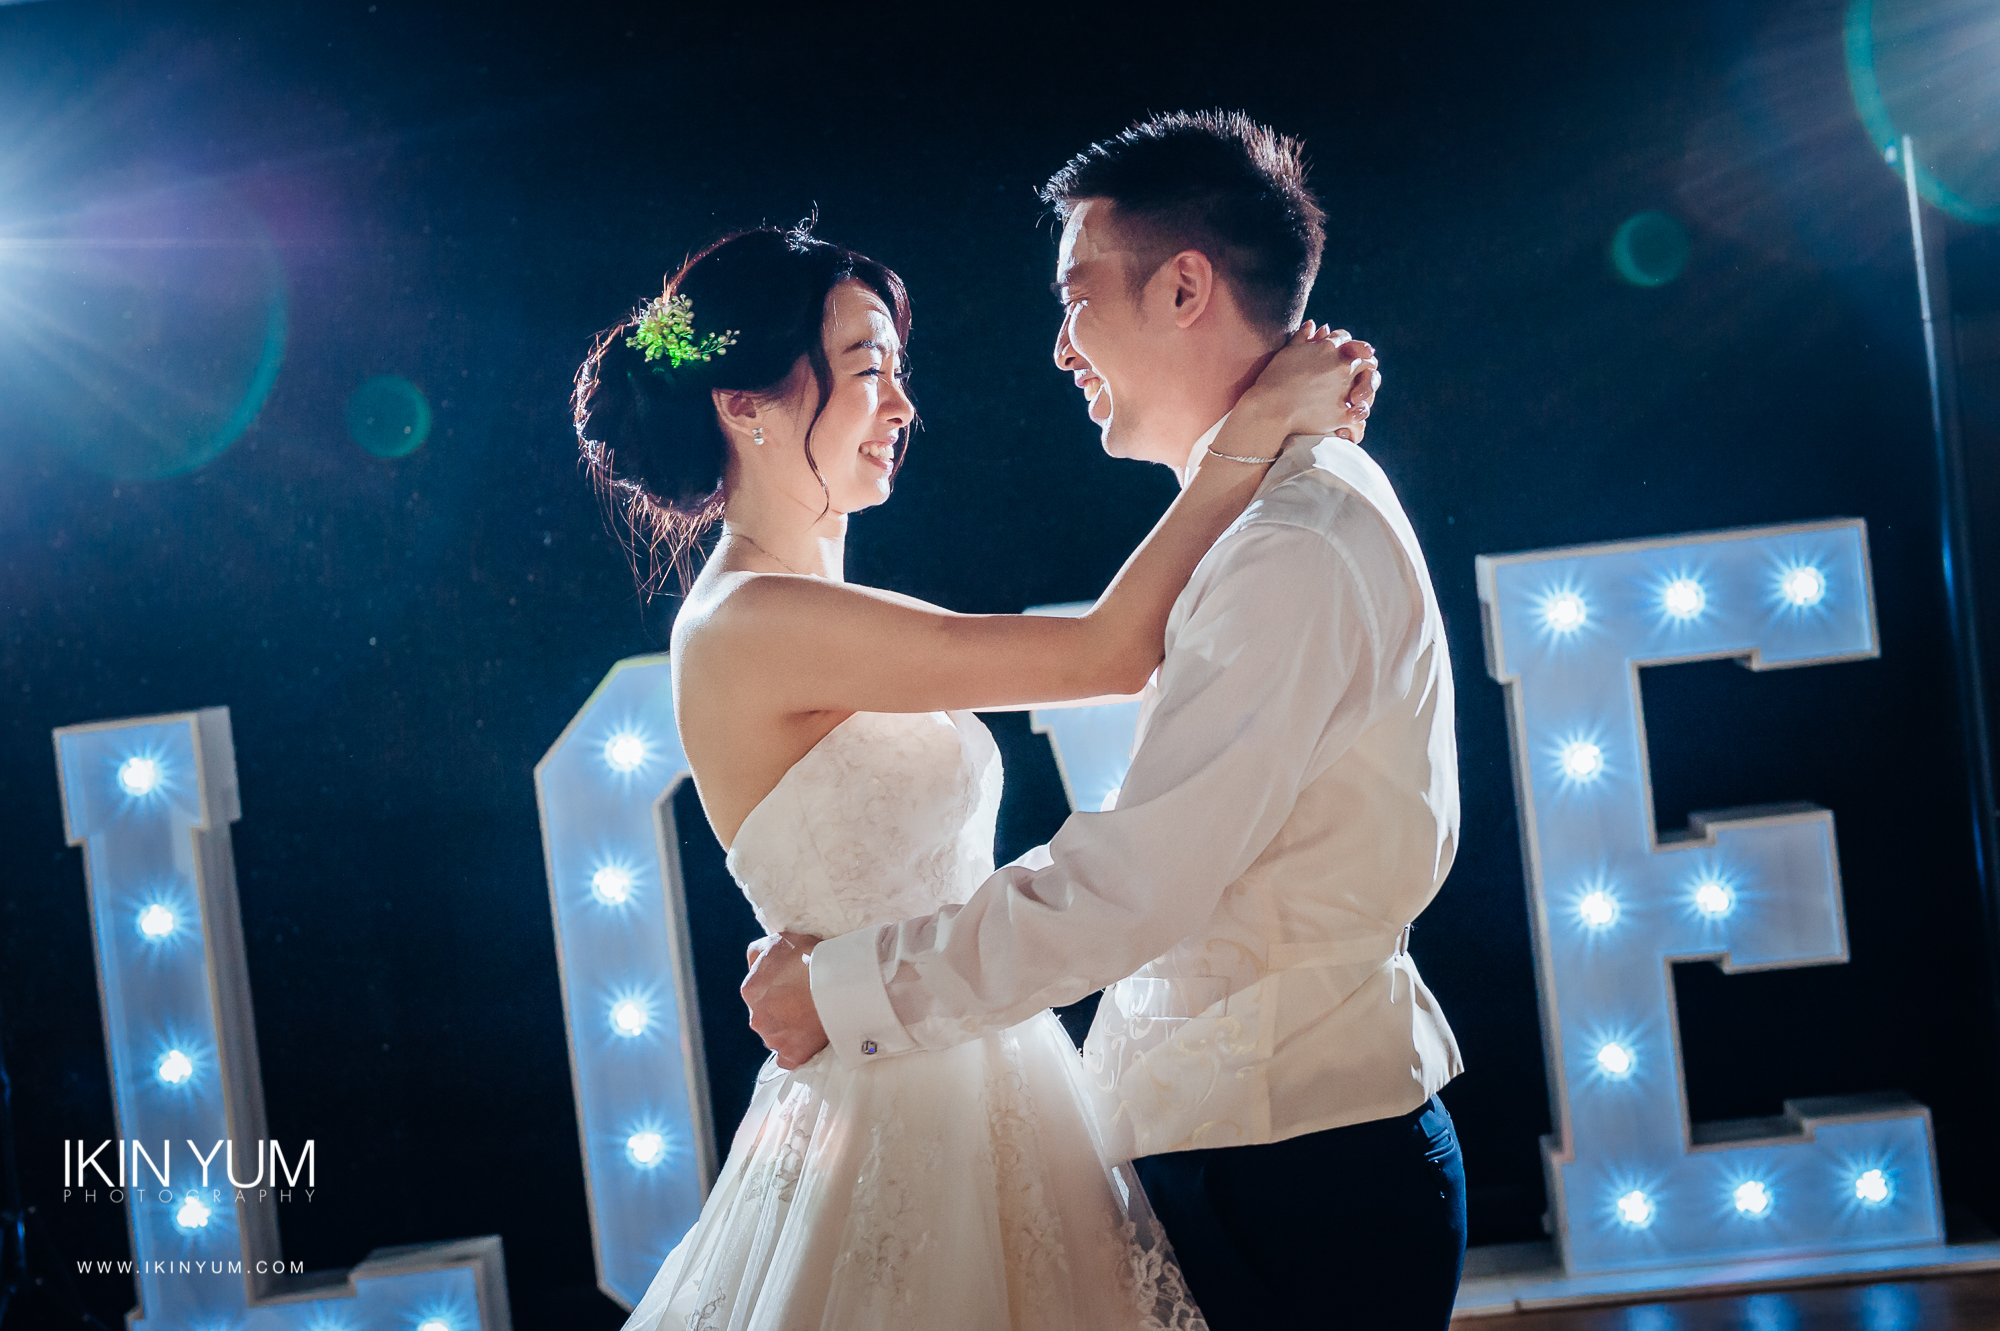 Sylvianne & Chun Wedding Day - Ikin Yum Photography-123.jpg